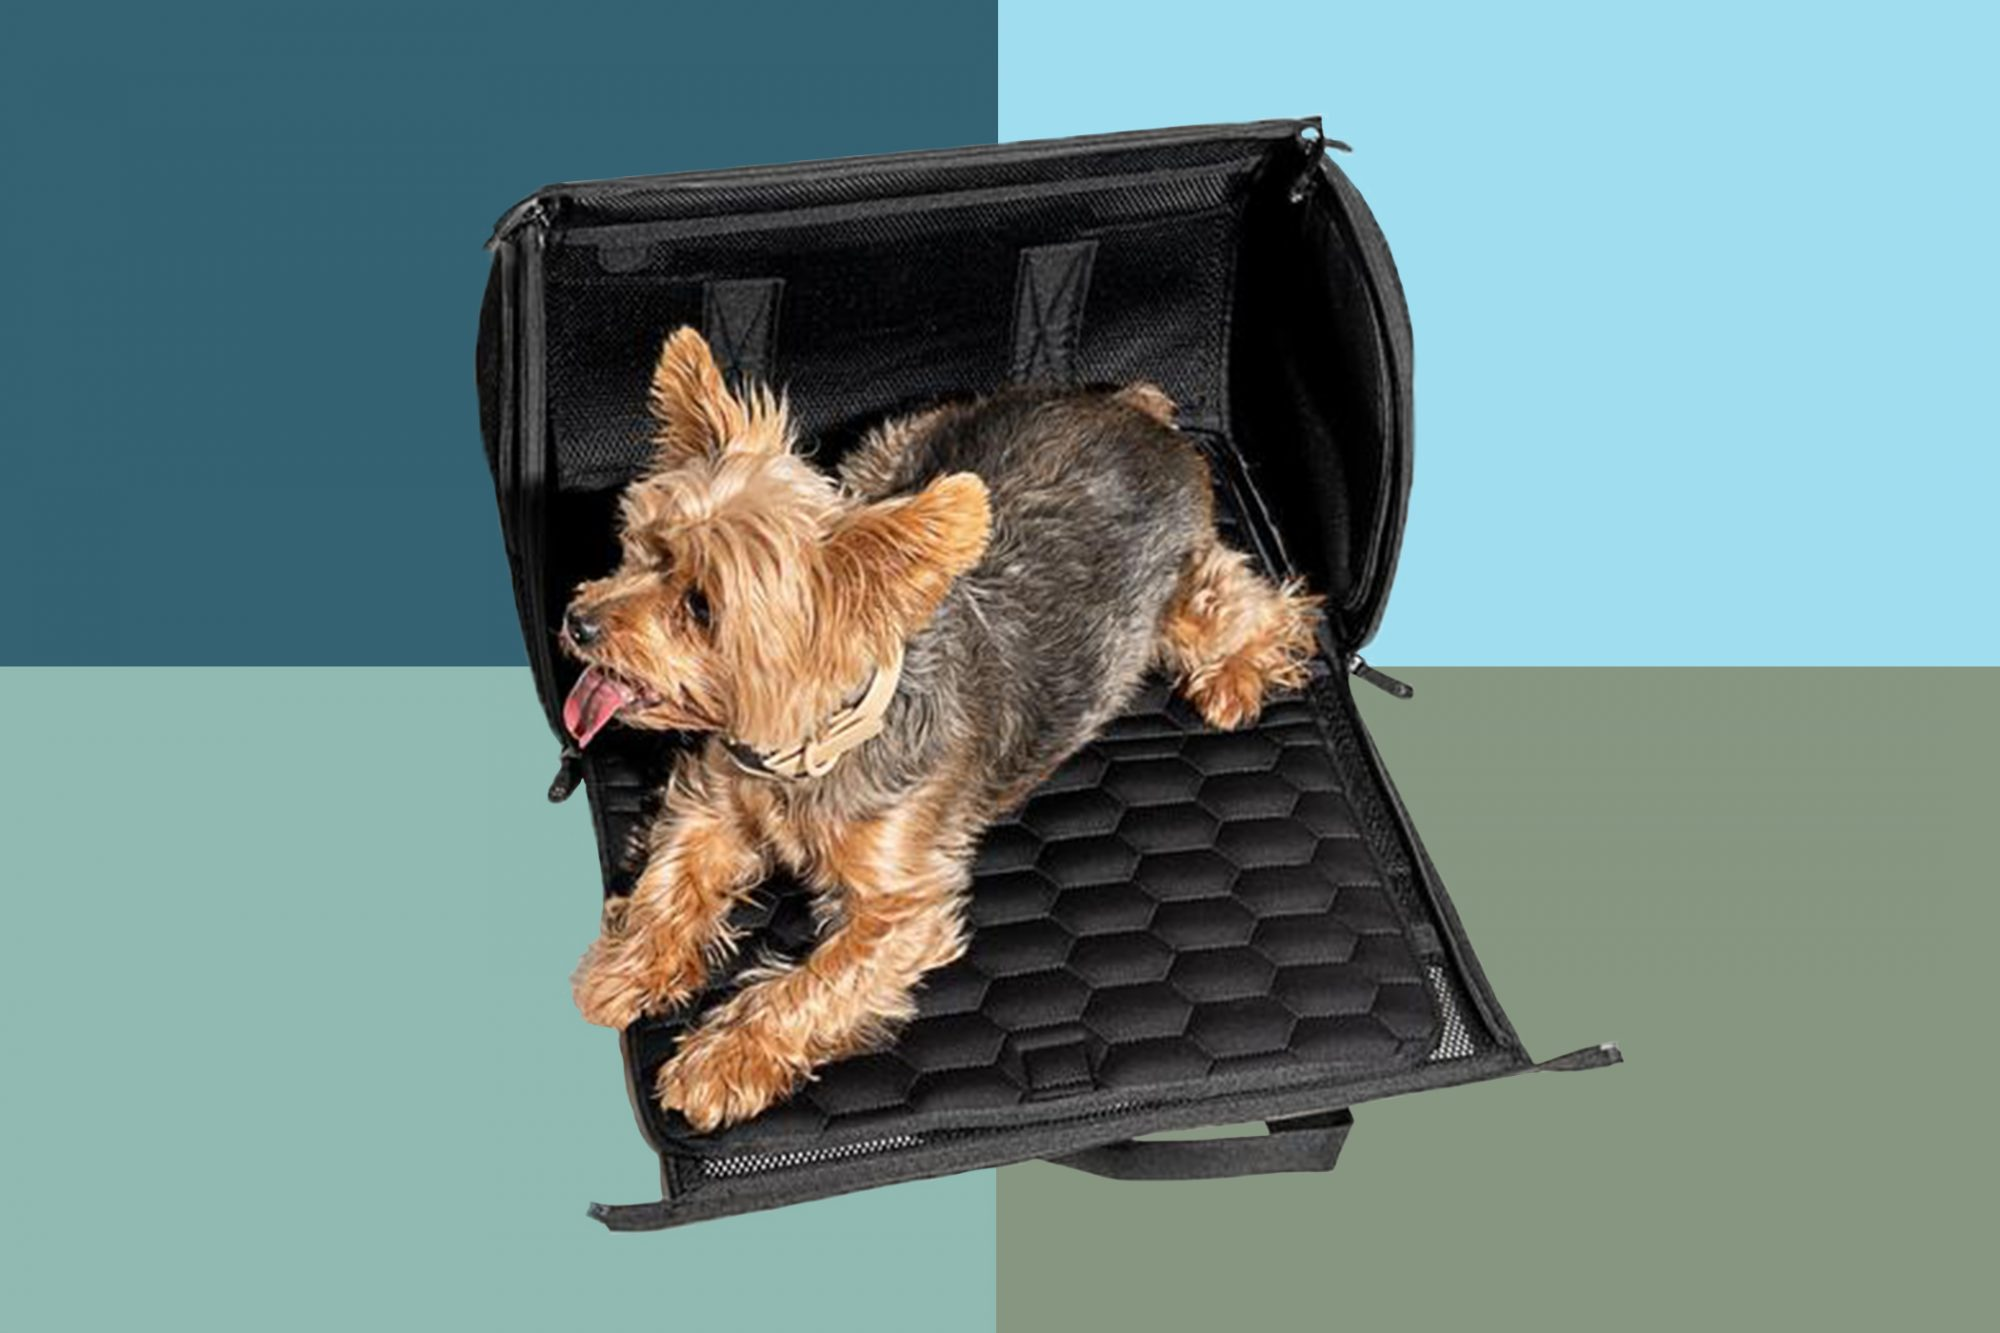 Orange and brown small fluffy dog laws on black portable pet carrier